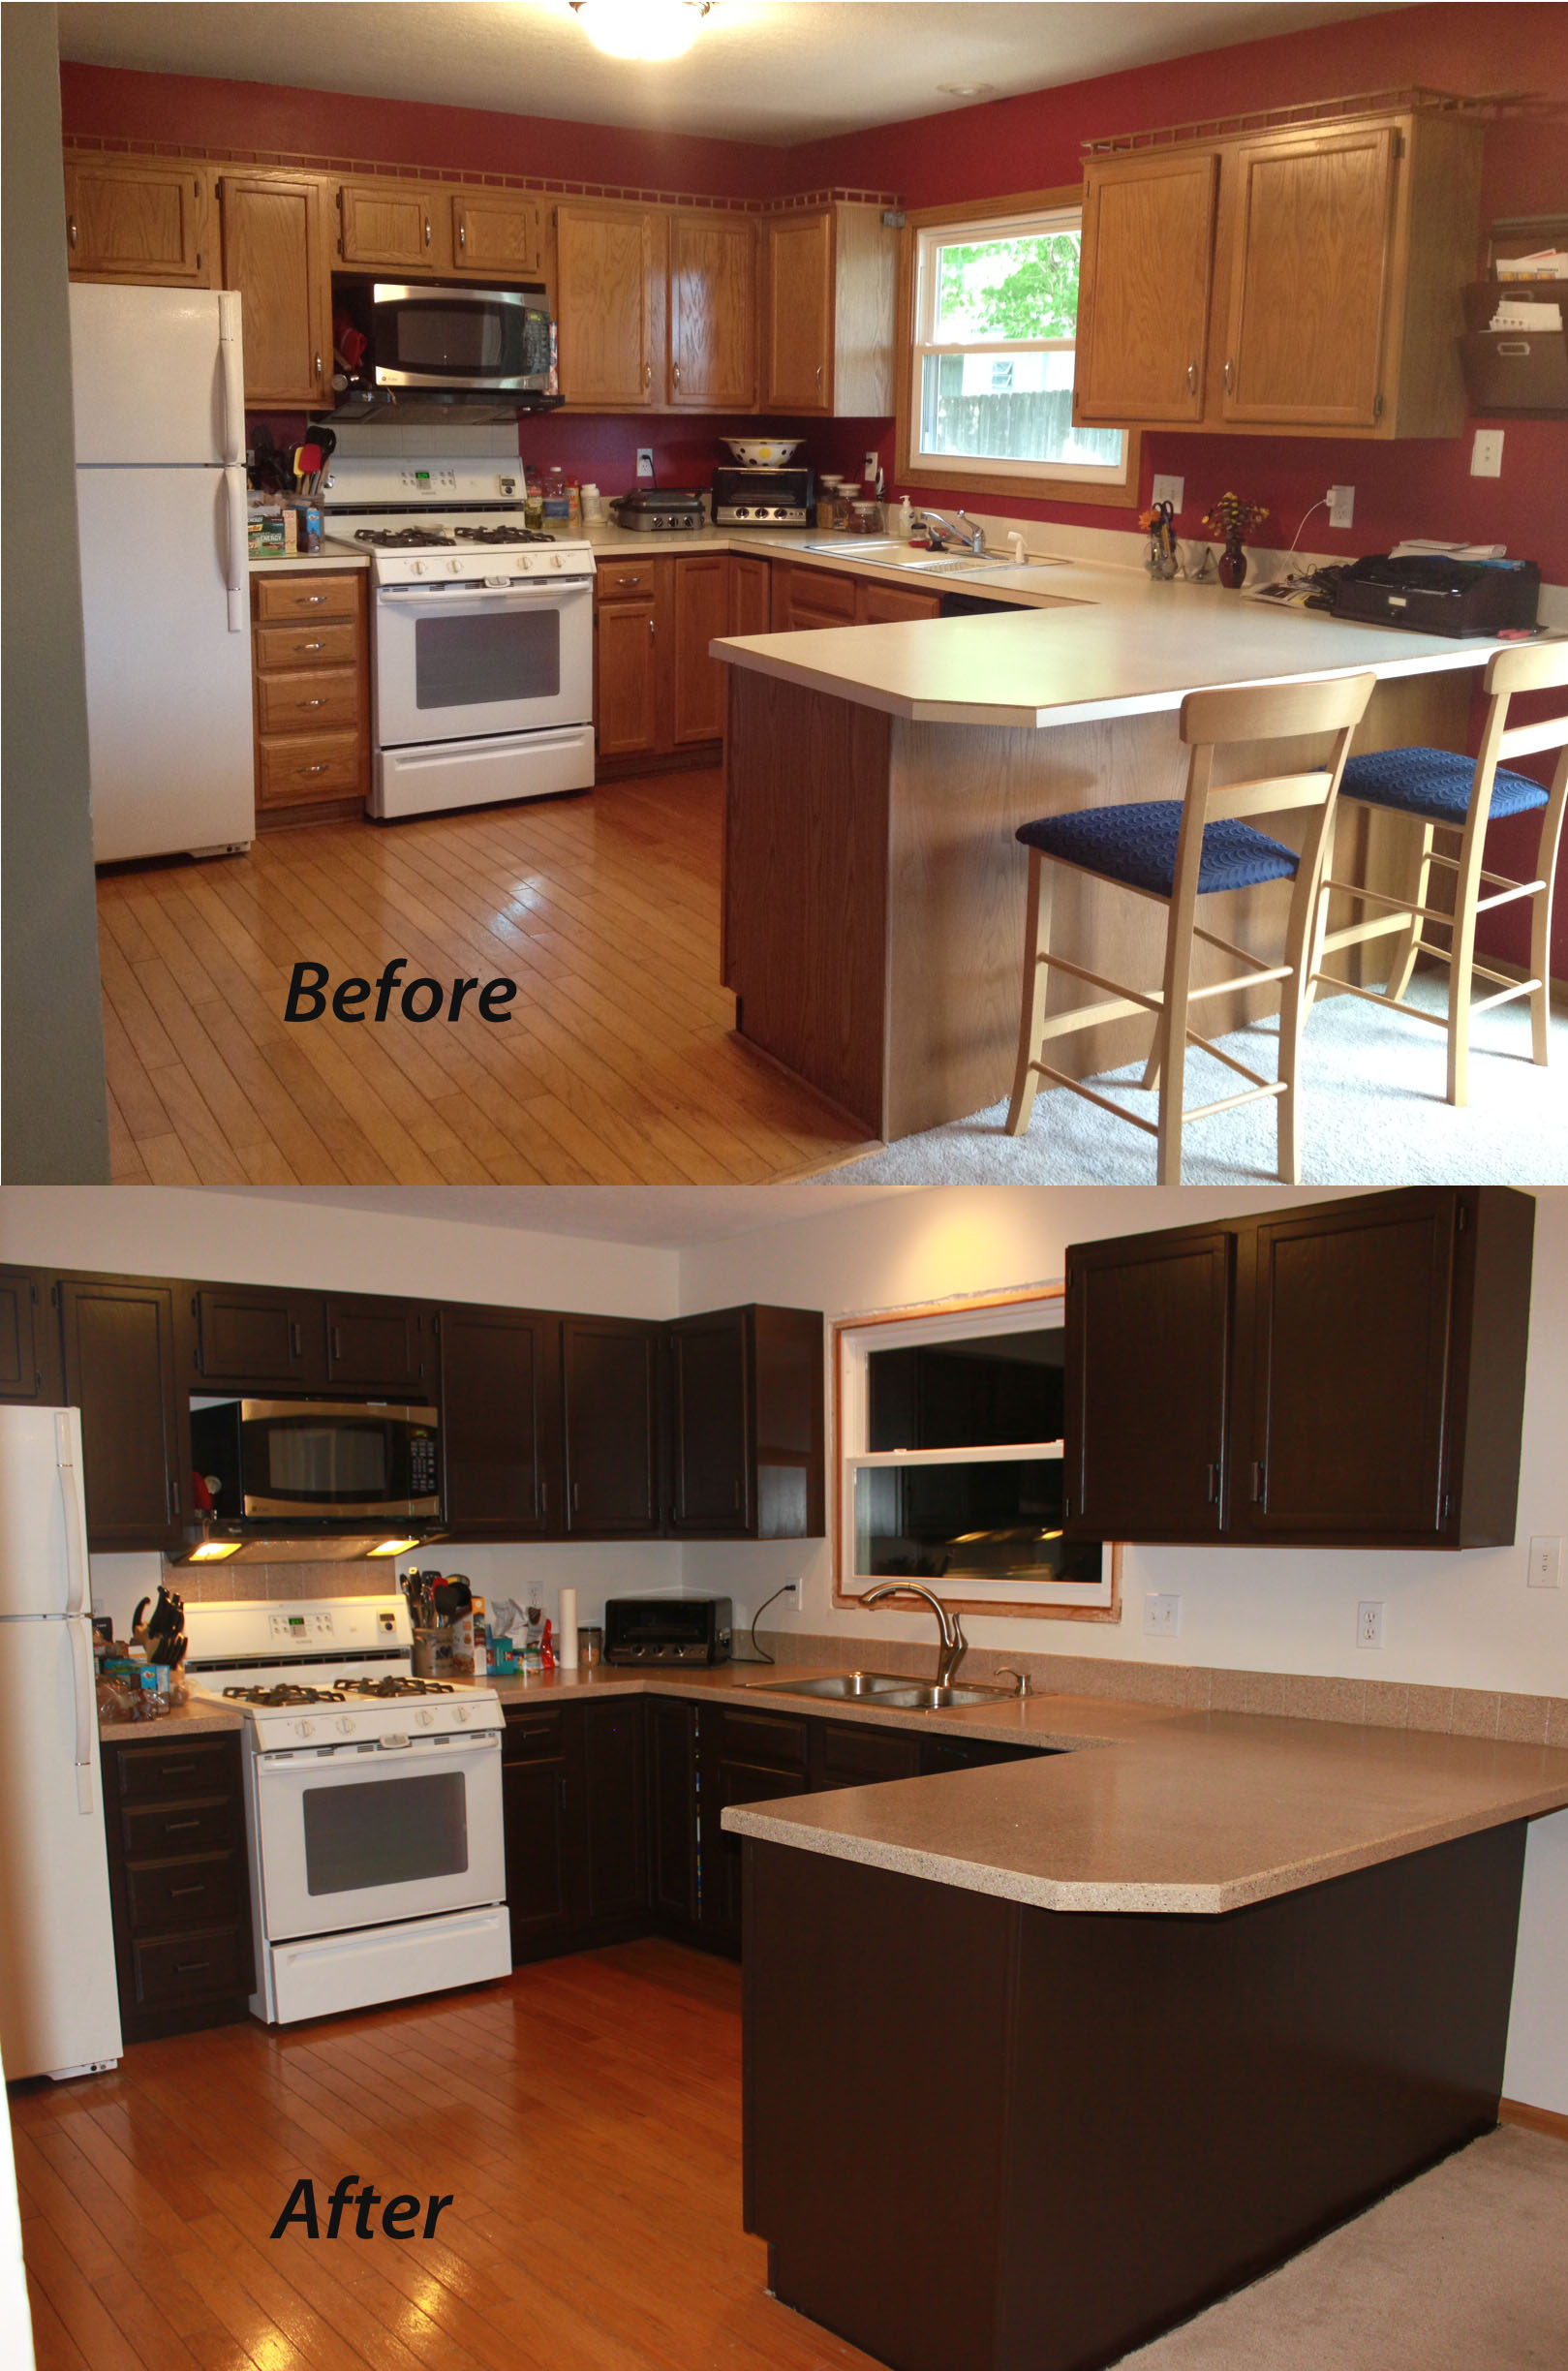 Painting Kitchen Cabinets - Sometimes Homemade on repaint home, repainted cabinets, repaint fireplace,